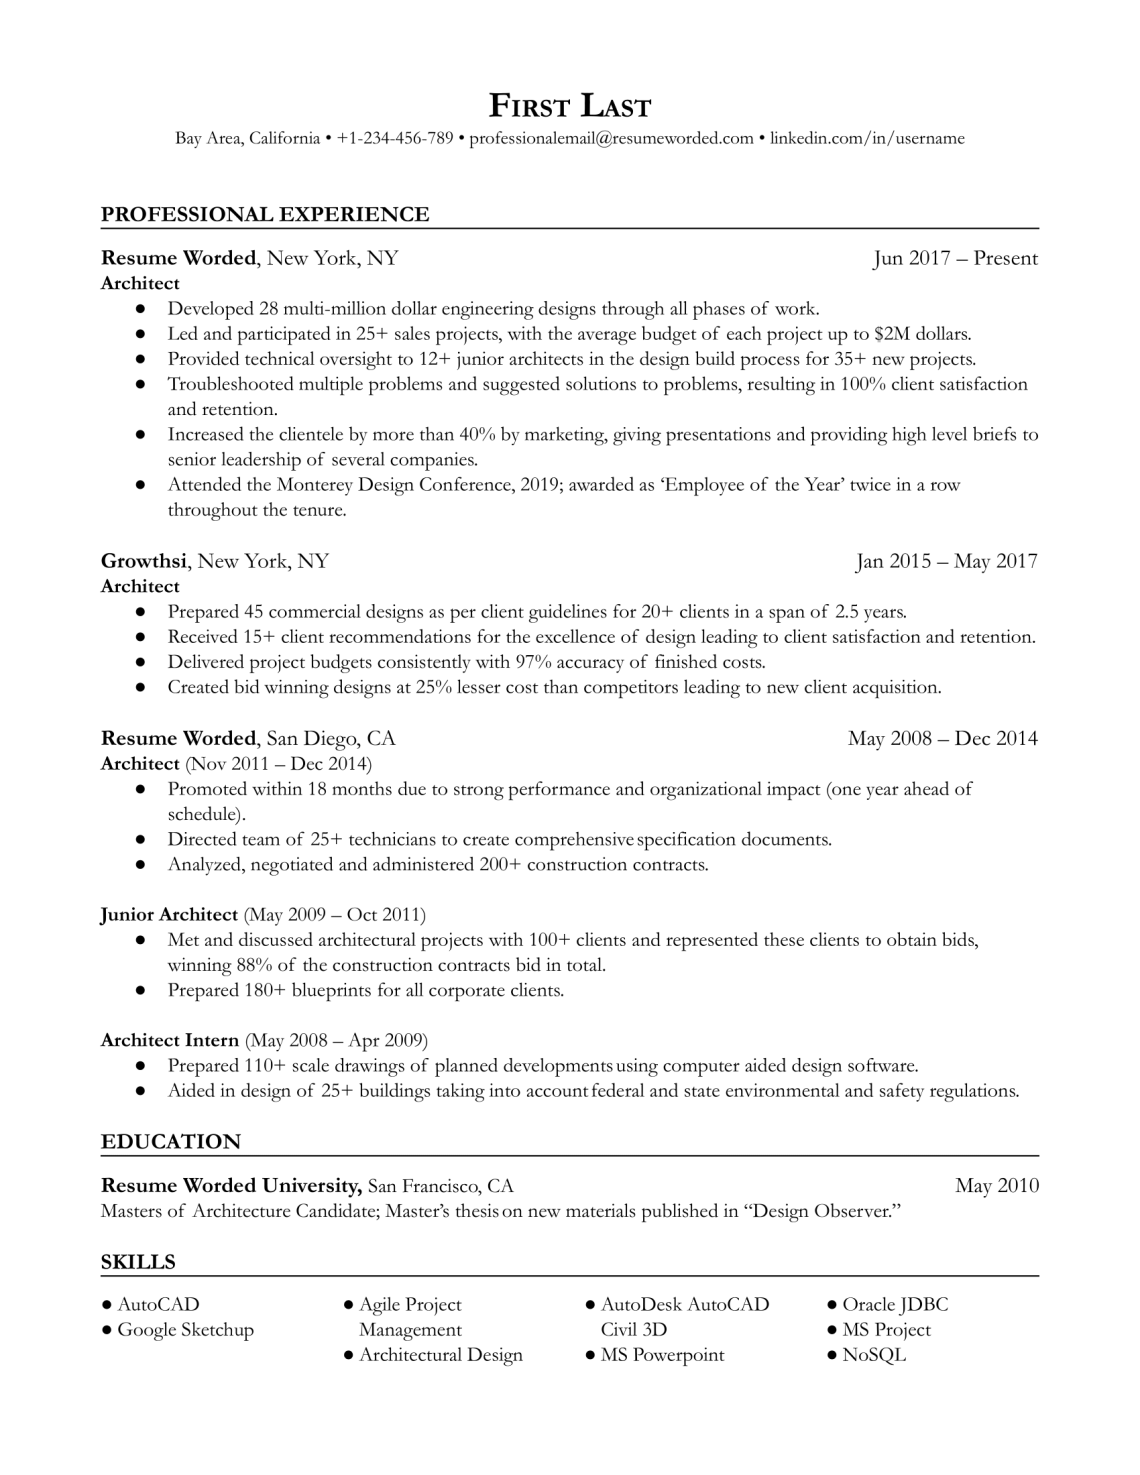 Architect Architecture Resume Example For 2021 Resume Worded Resume Worded